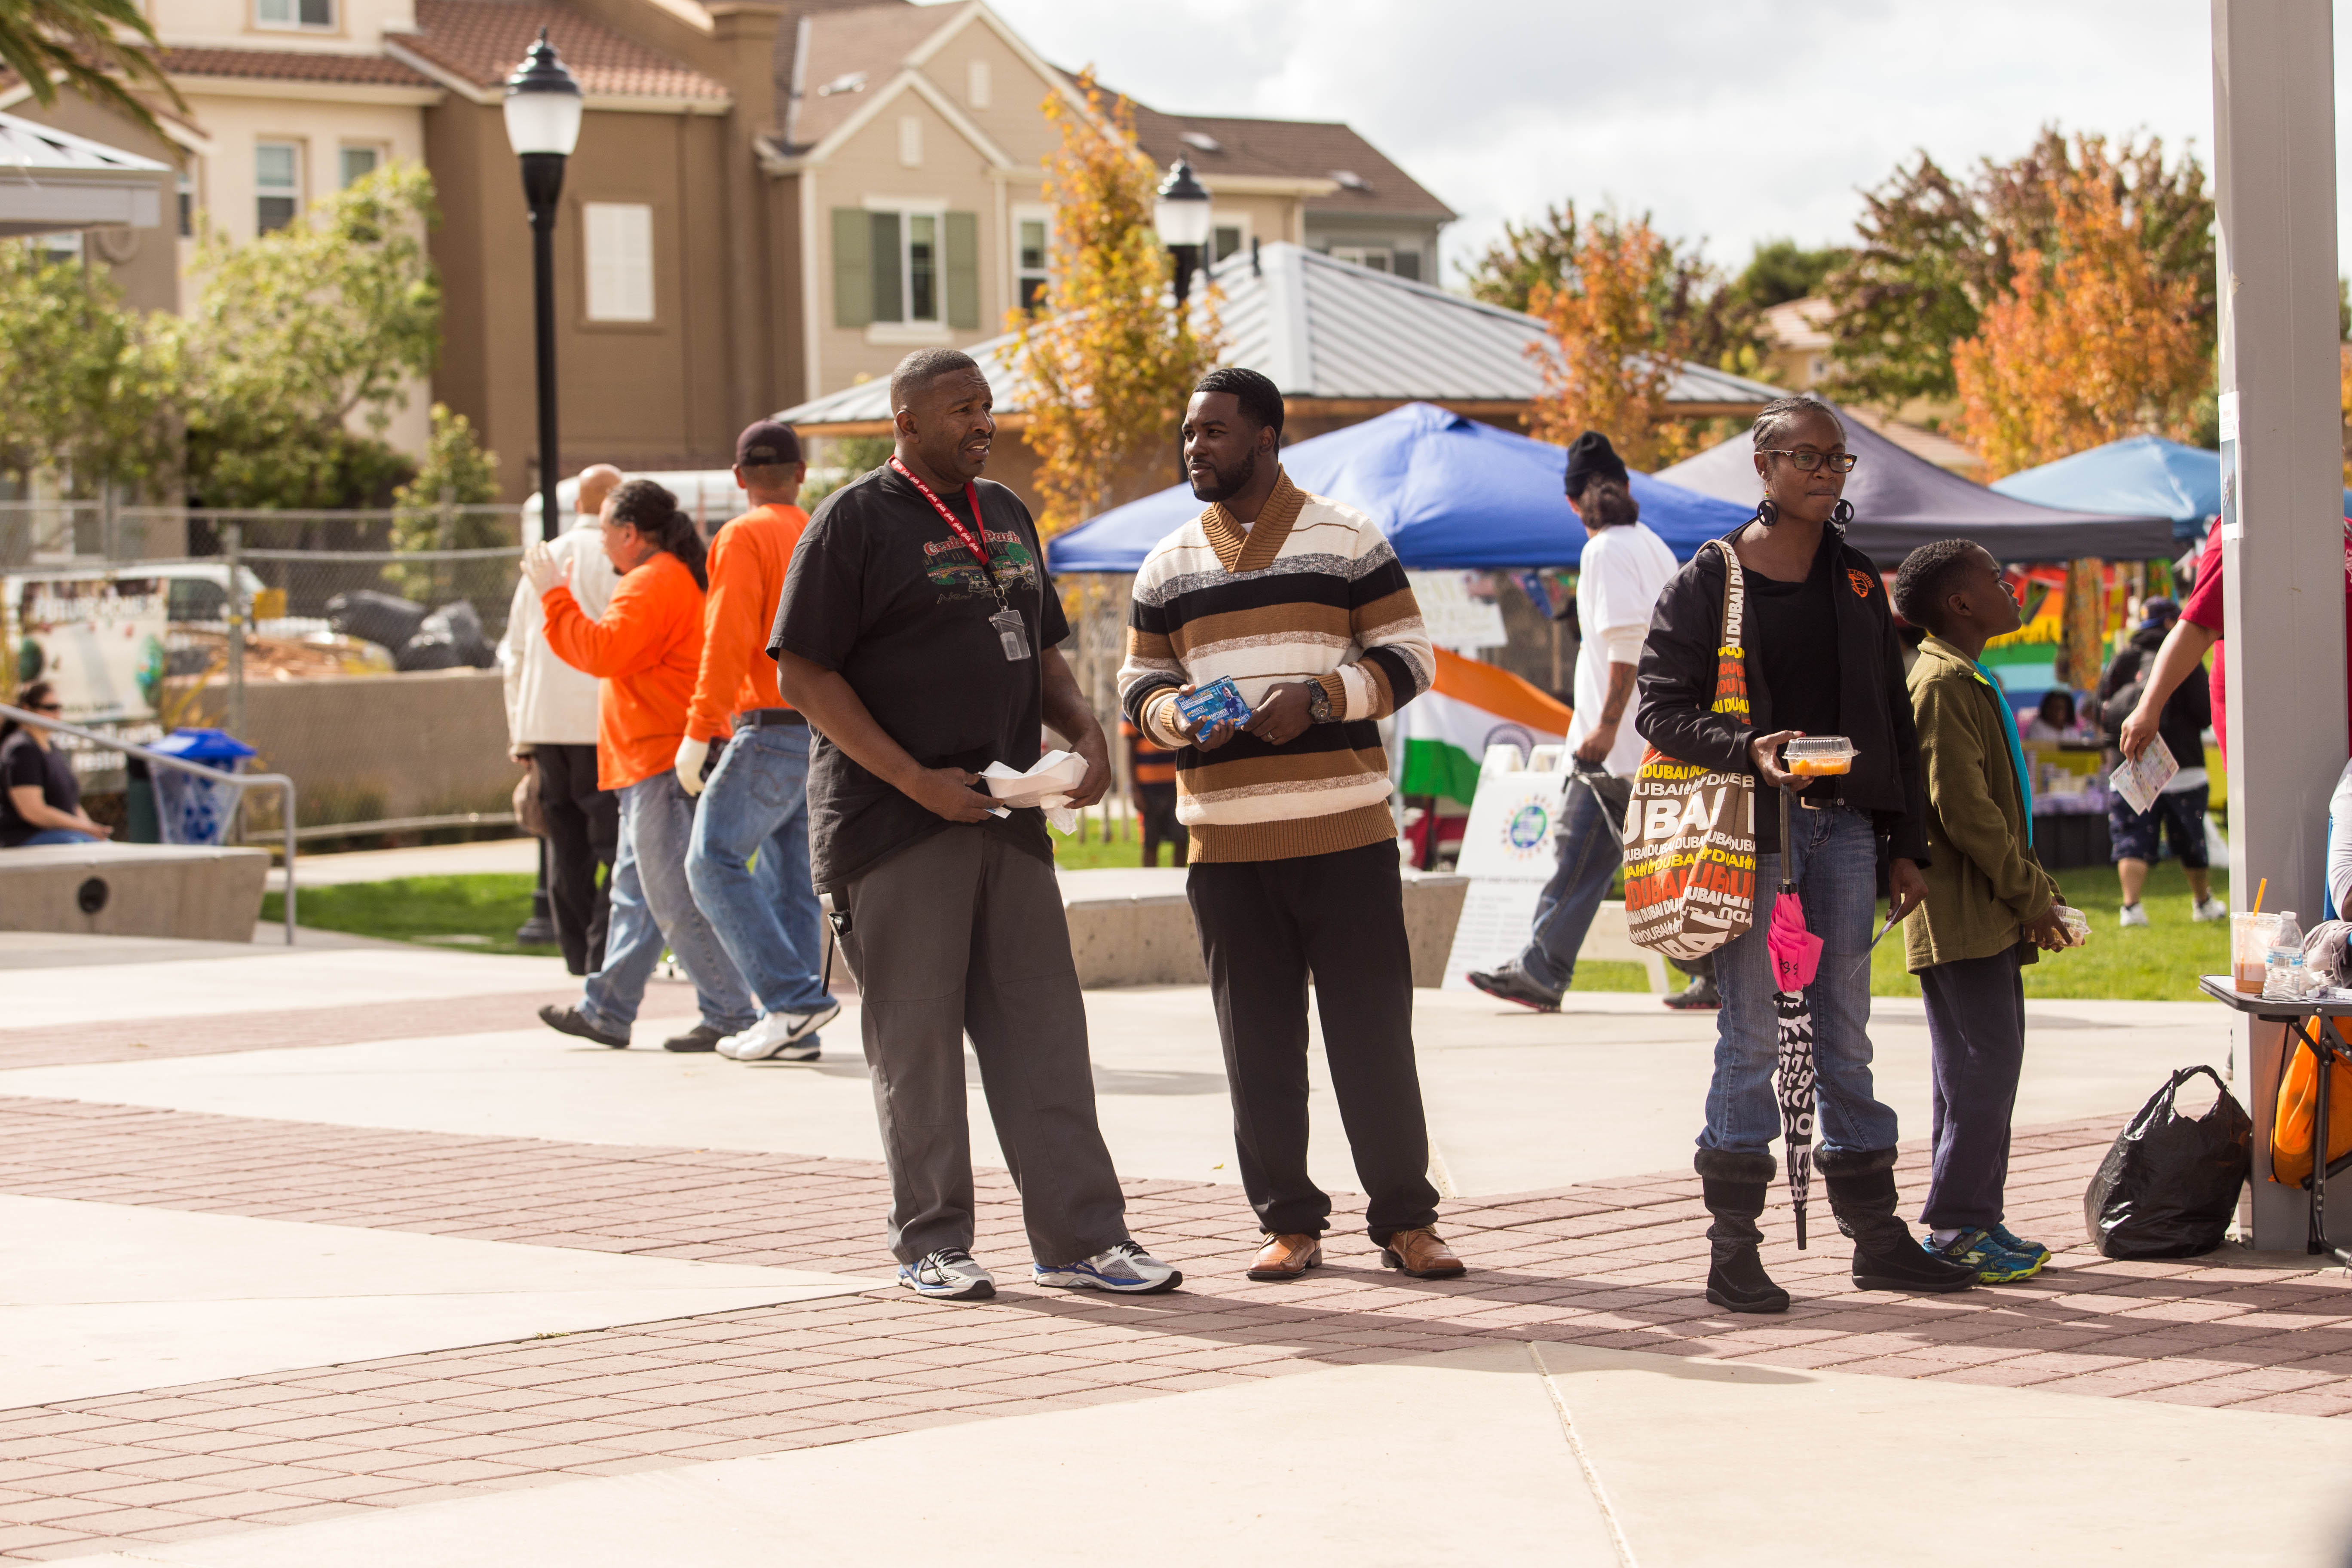 CITY_PITTSBURG_MULTICULTURAL_OCTOBER_2016 (299)